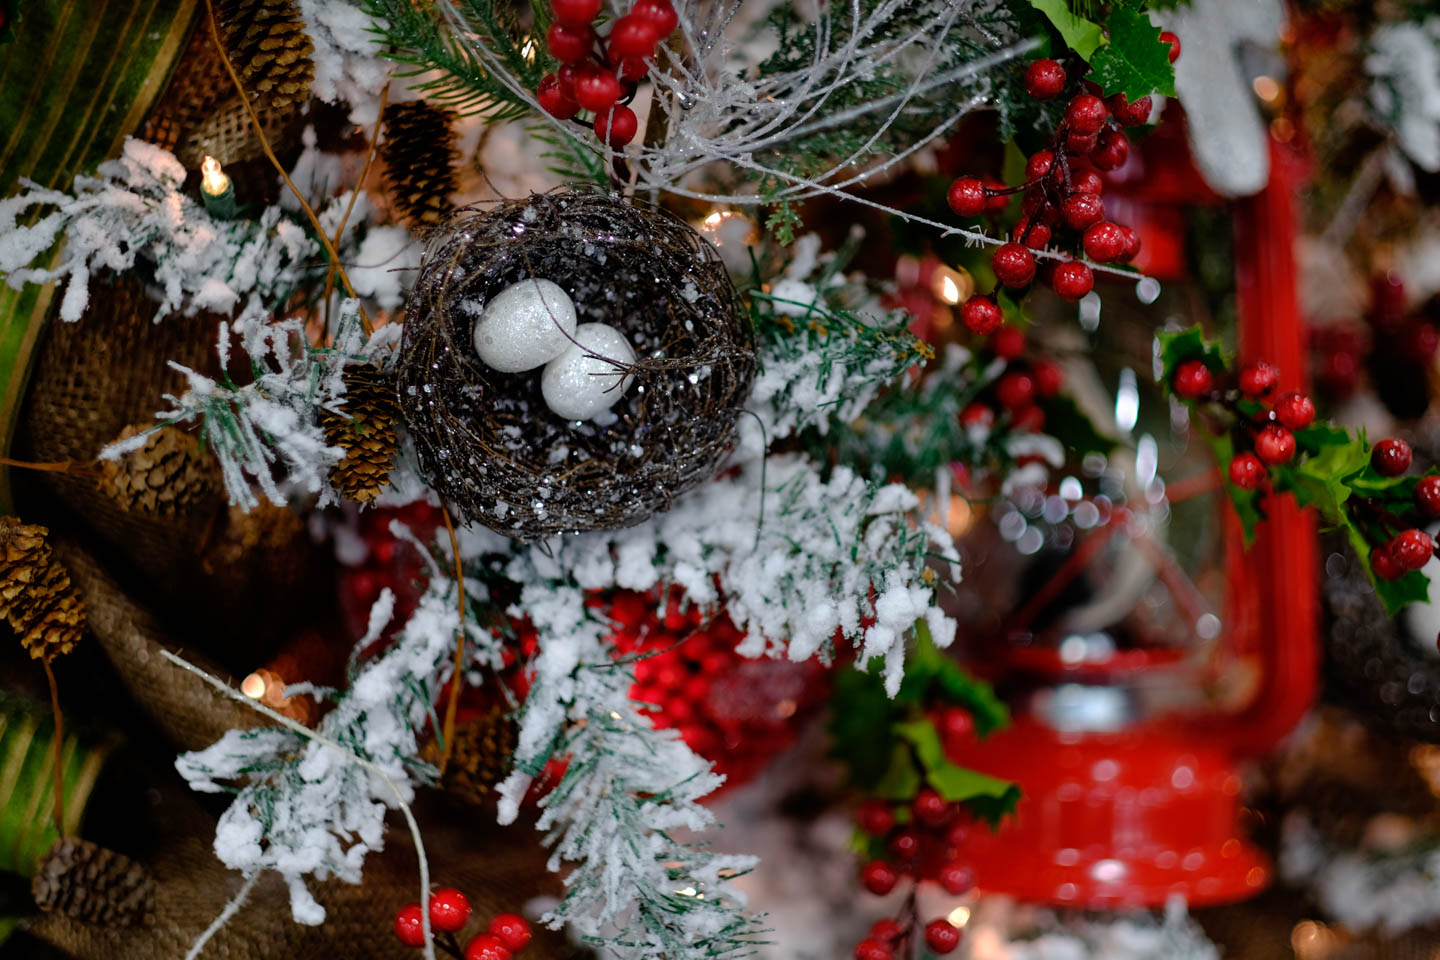 Christmas tree with bird eggs